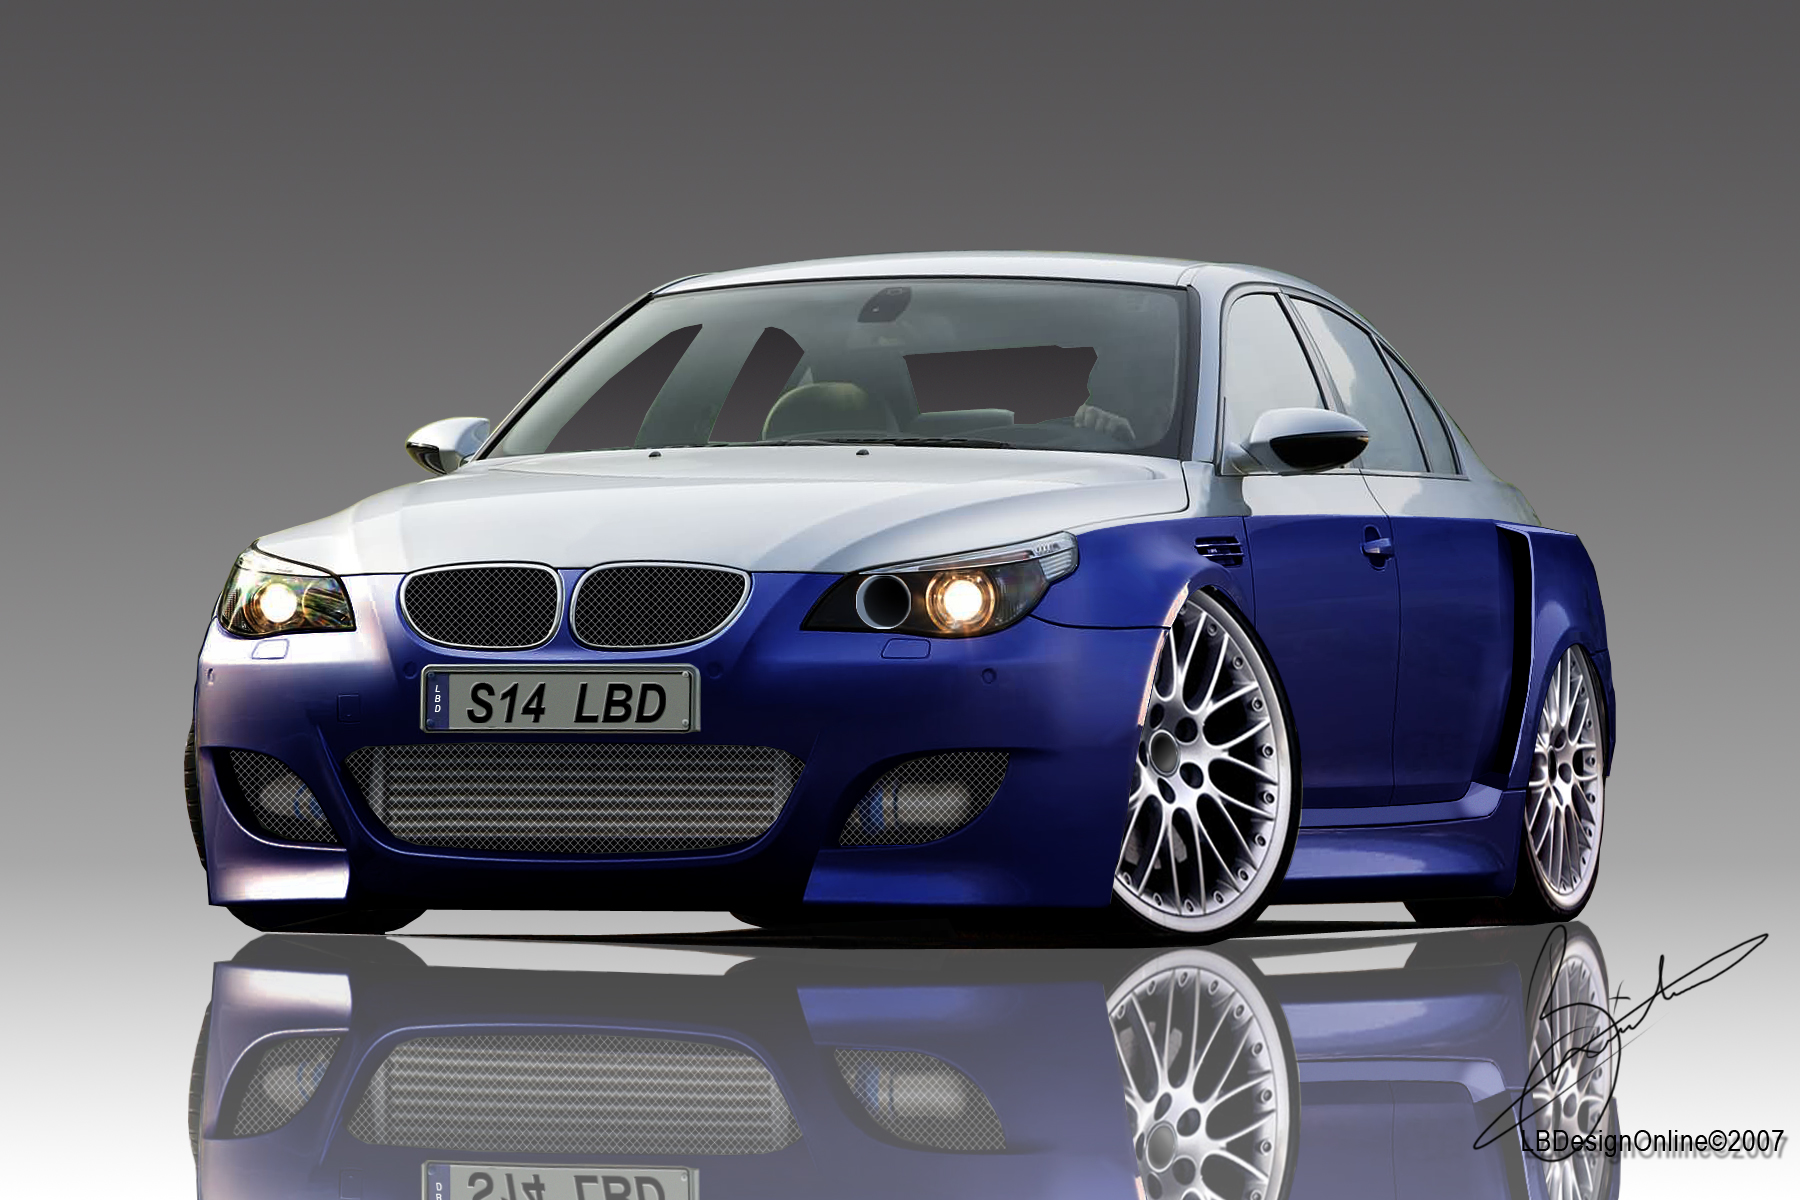 bmw wallpaper 131 you are viewing the bmw wallpaper named bmw 131 it 1800x1200